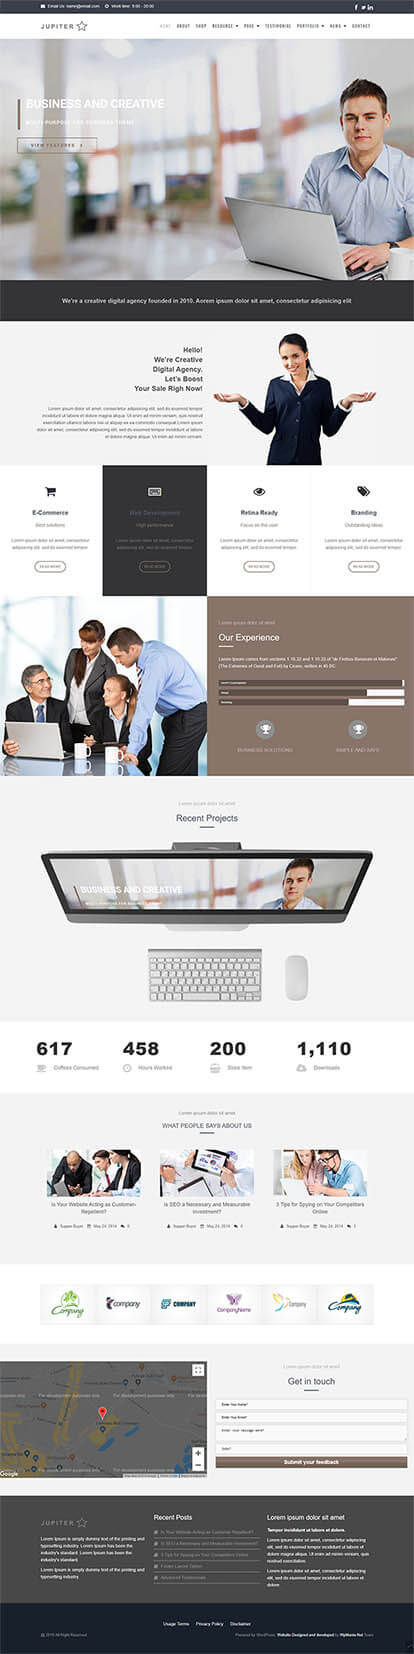 Jupiter WORDPRESS THEME Full Demo